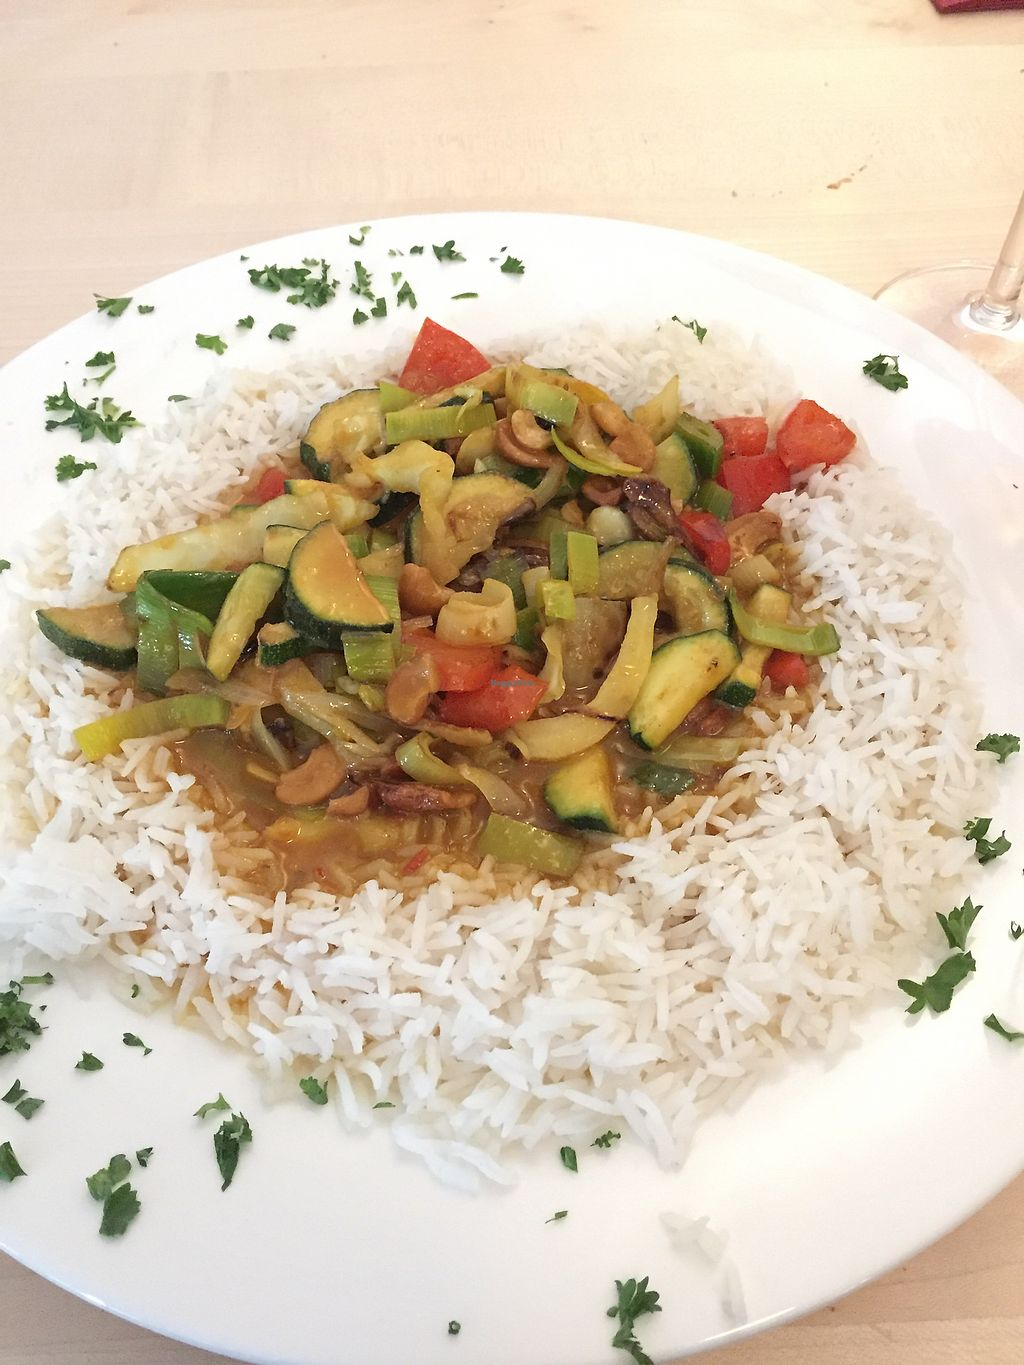 """Photo of Gasthaus zum Sternen  by <a href=""""/members/profile/vegandesi.res"""">vegandesi.res</a> <br/>Vegan curry with rice <br/> September 3, 2017  - <a href='/contact/abuse/image/100000/300332'>Report</a>"""